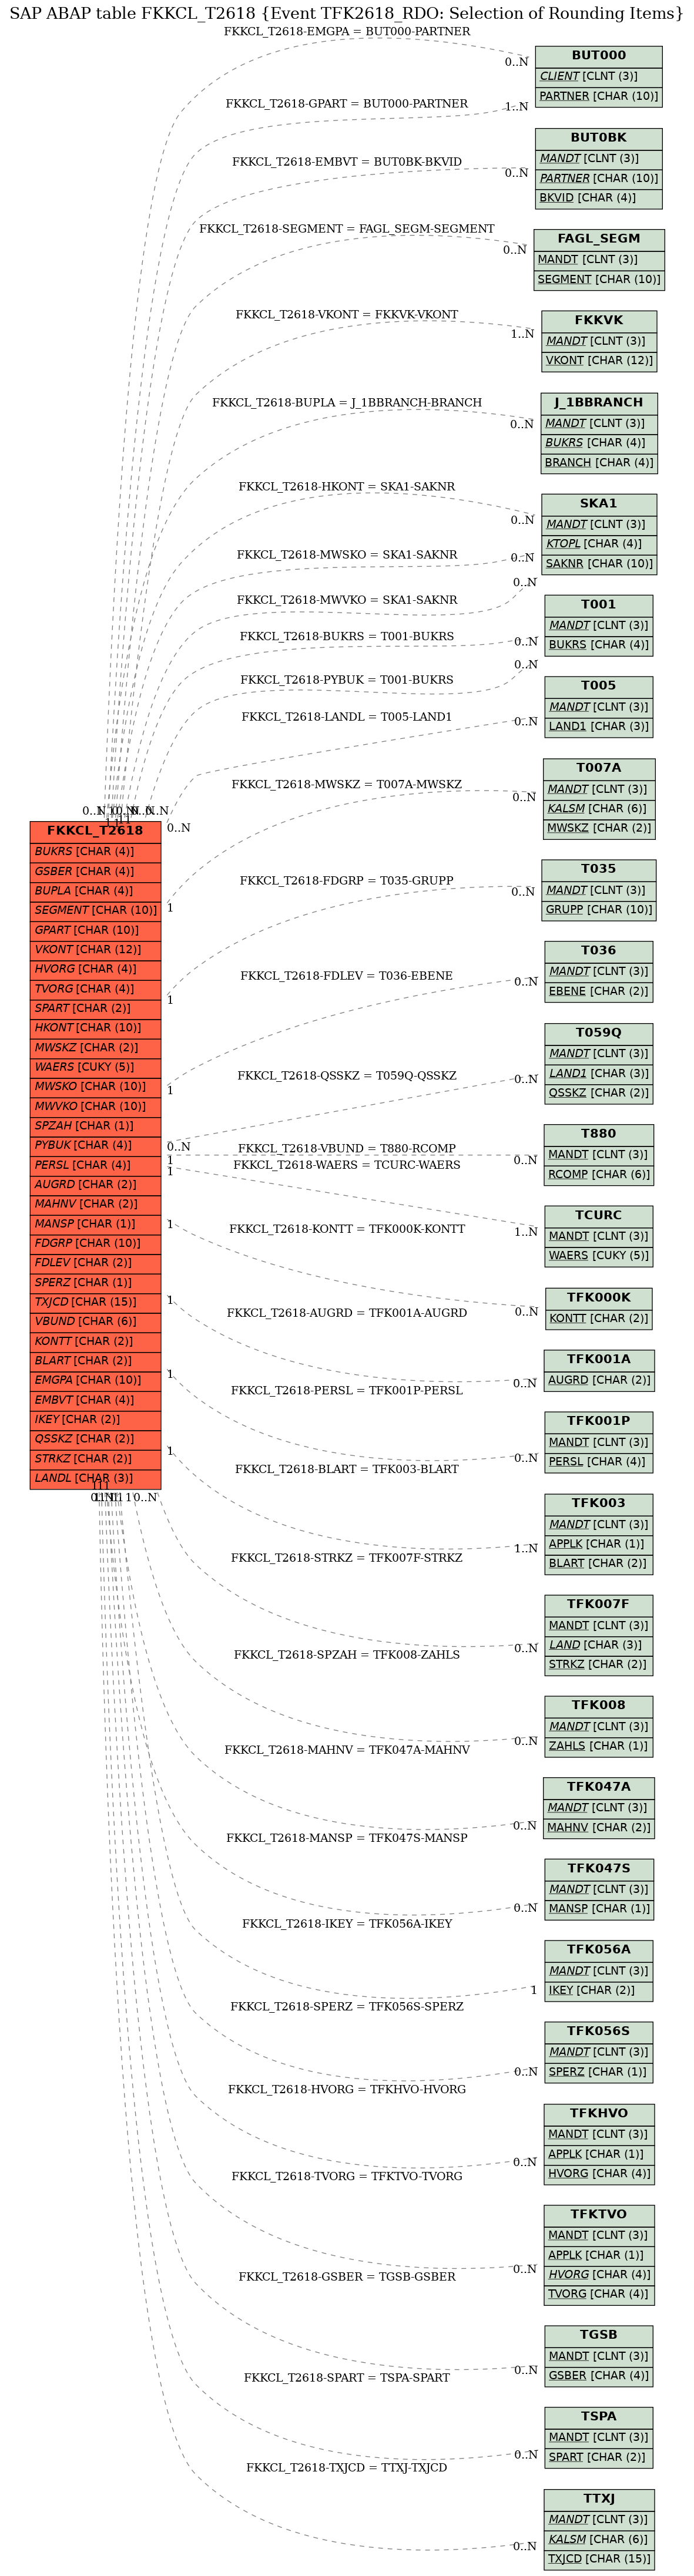 E-R Diagram for table FKKCL_T2618 (Event TFK2618_RDO: Selection of Rounding Items)